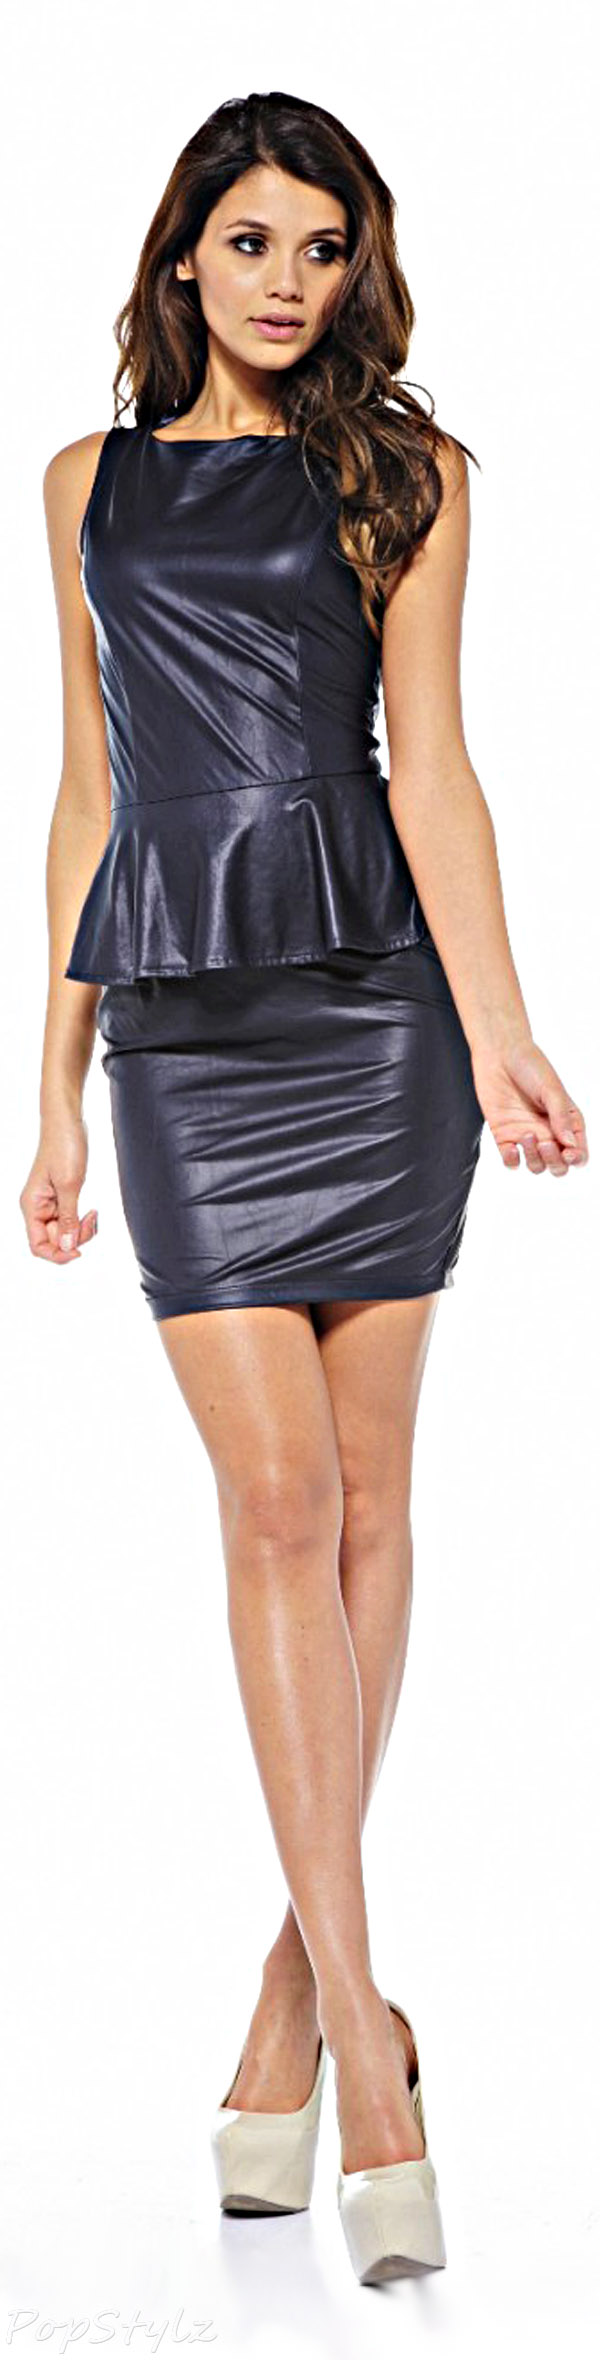 AX Paris Wetlook Peplum Dress